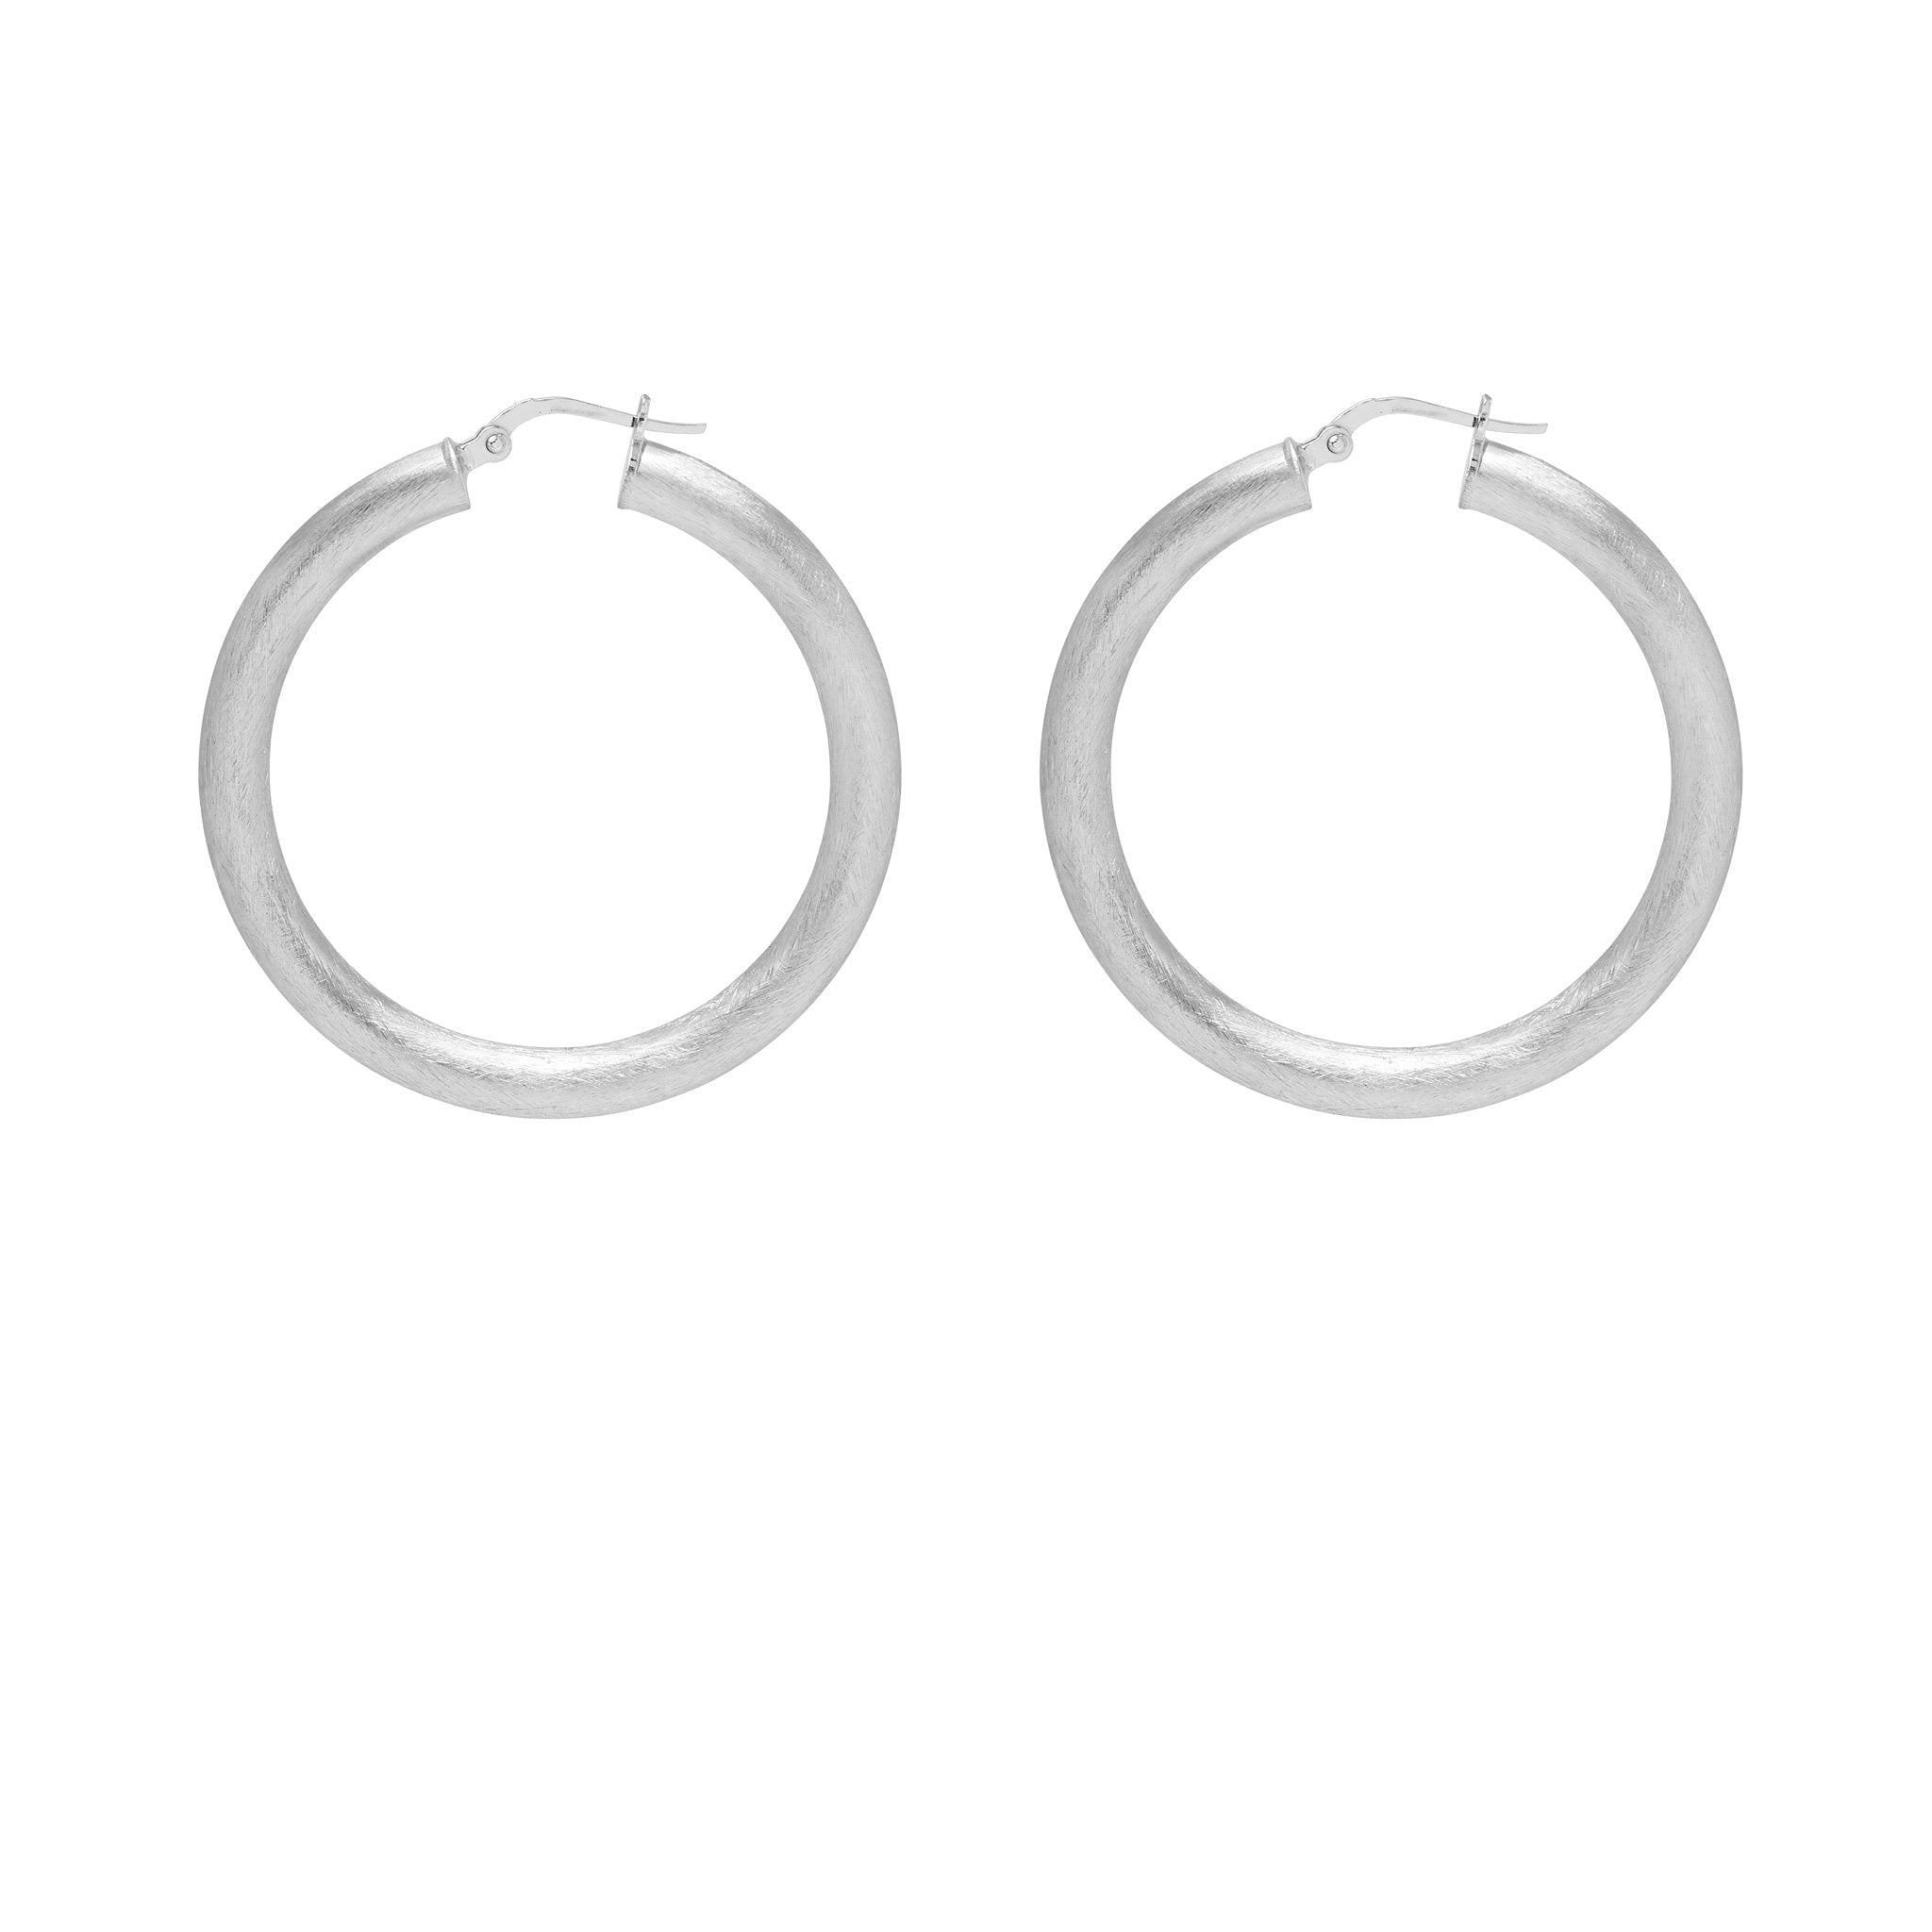 La ROUNDED SATINA Hoops - The Hoop Station 925 Sterling Silver Hoop Earrings Gold Huggies